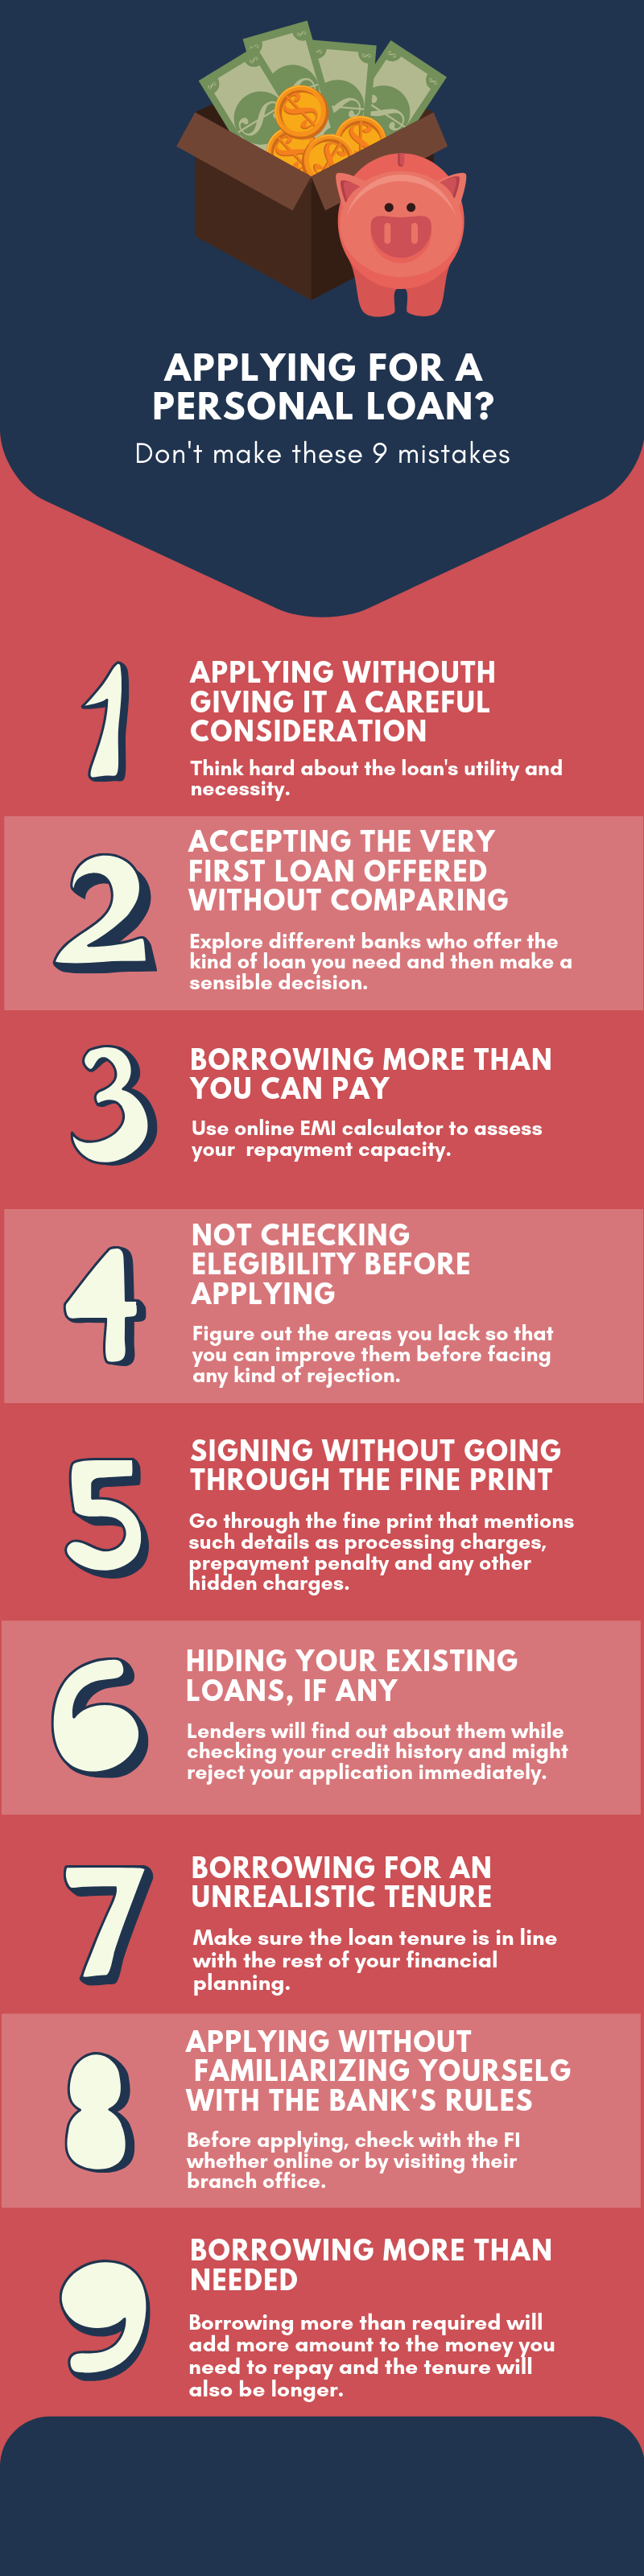 Share 9 Common Mistakes When Applying For A Personal Loan